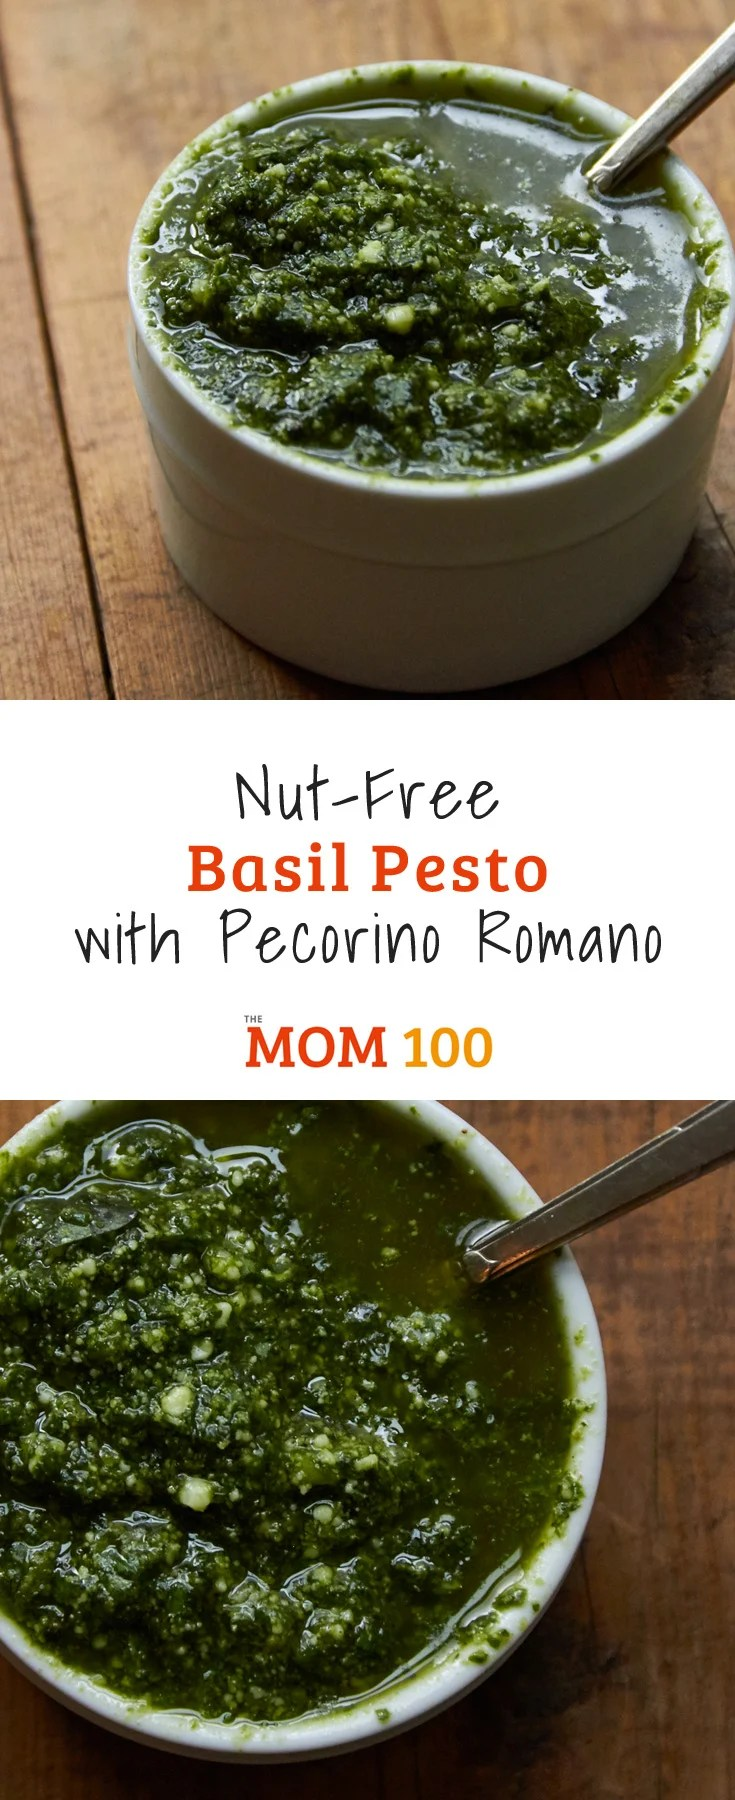 This Nut-Free Basil Pesto with Pecorino Romano is for all the pesto lovers out there, including the ones who are allergic to nuts (like me!)